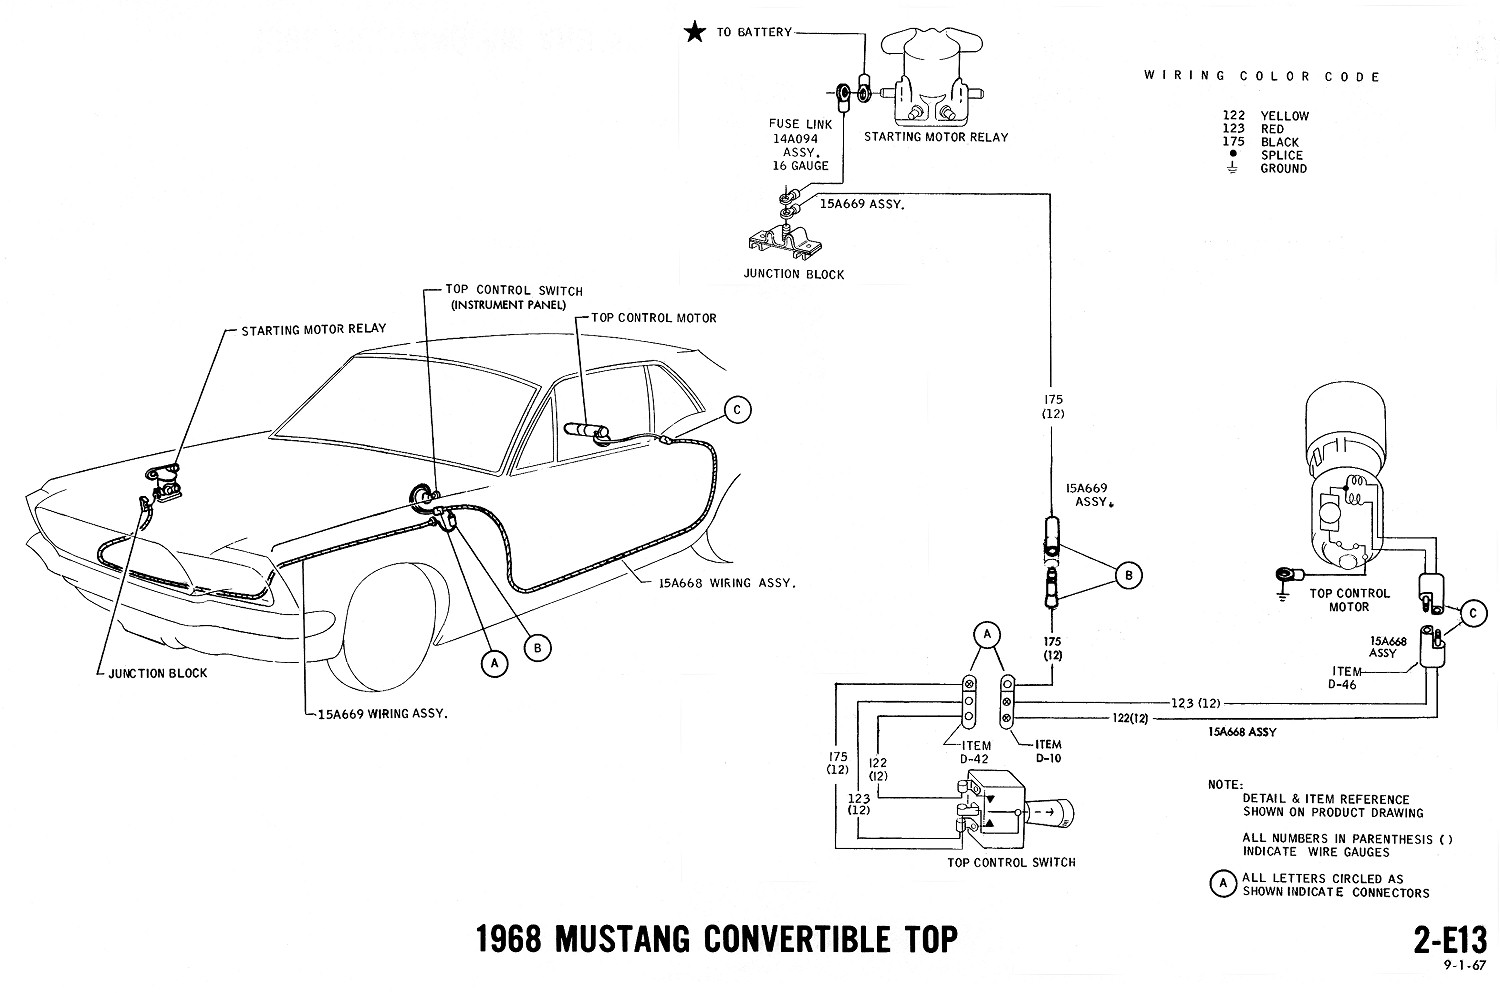 1968 mustang wiring diagrams evolving software1968 Mustang Convertible Top Switch Wiring Diagram #1